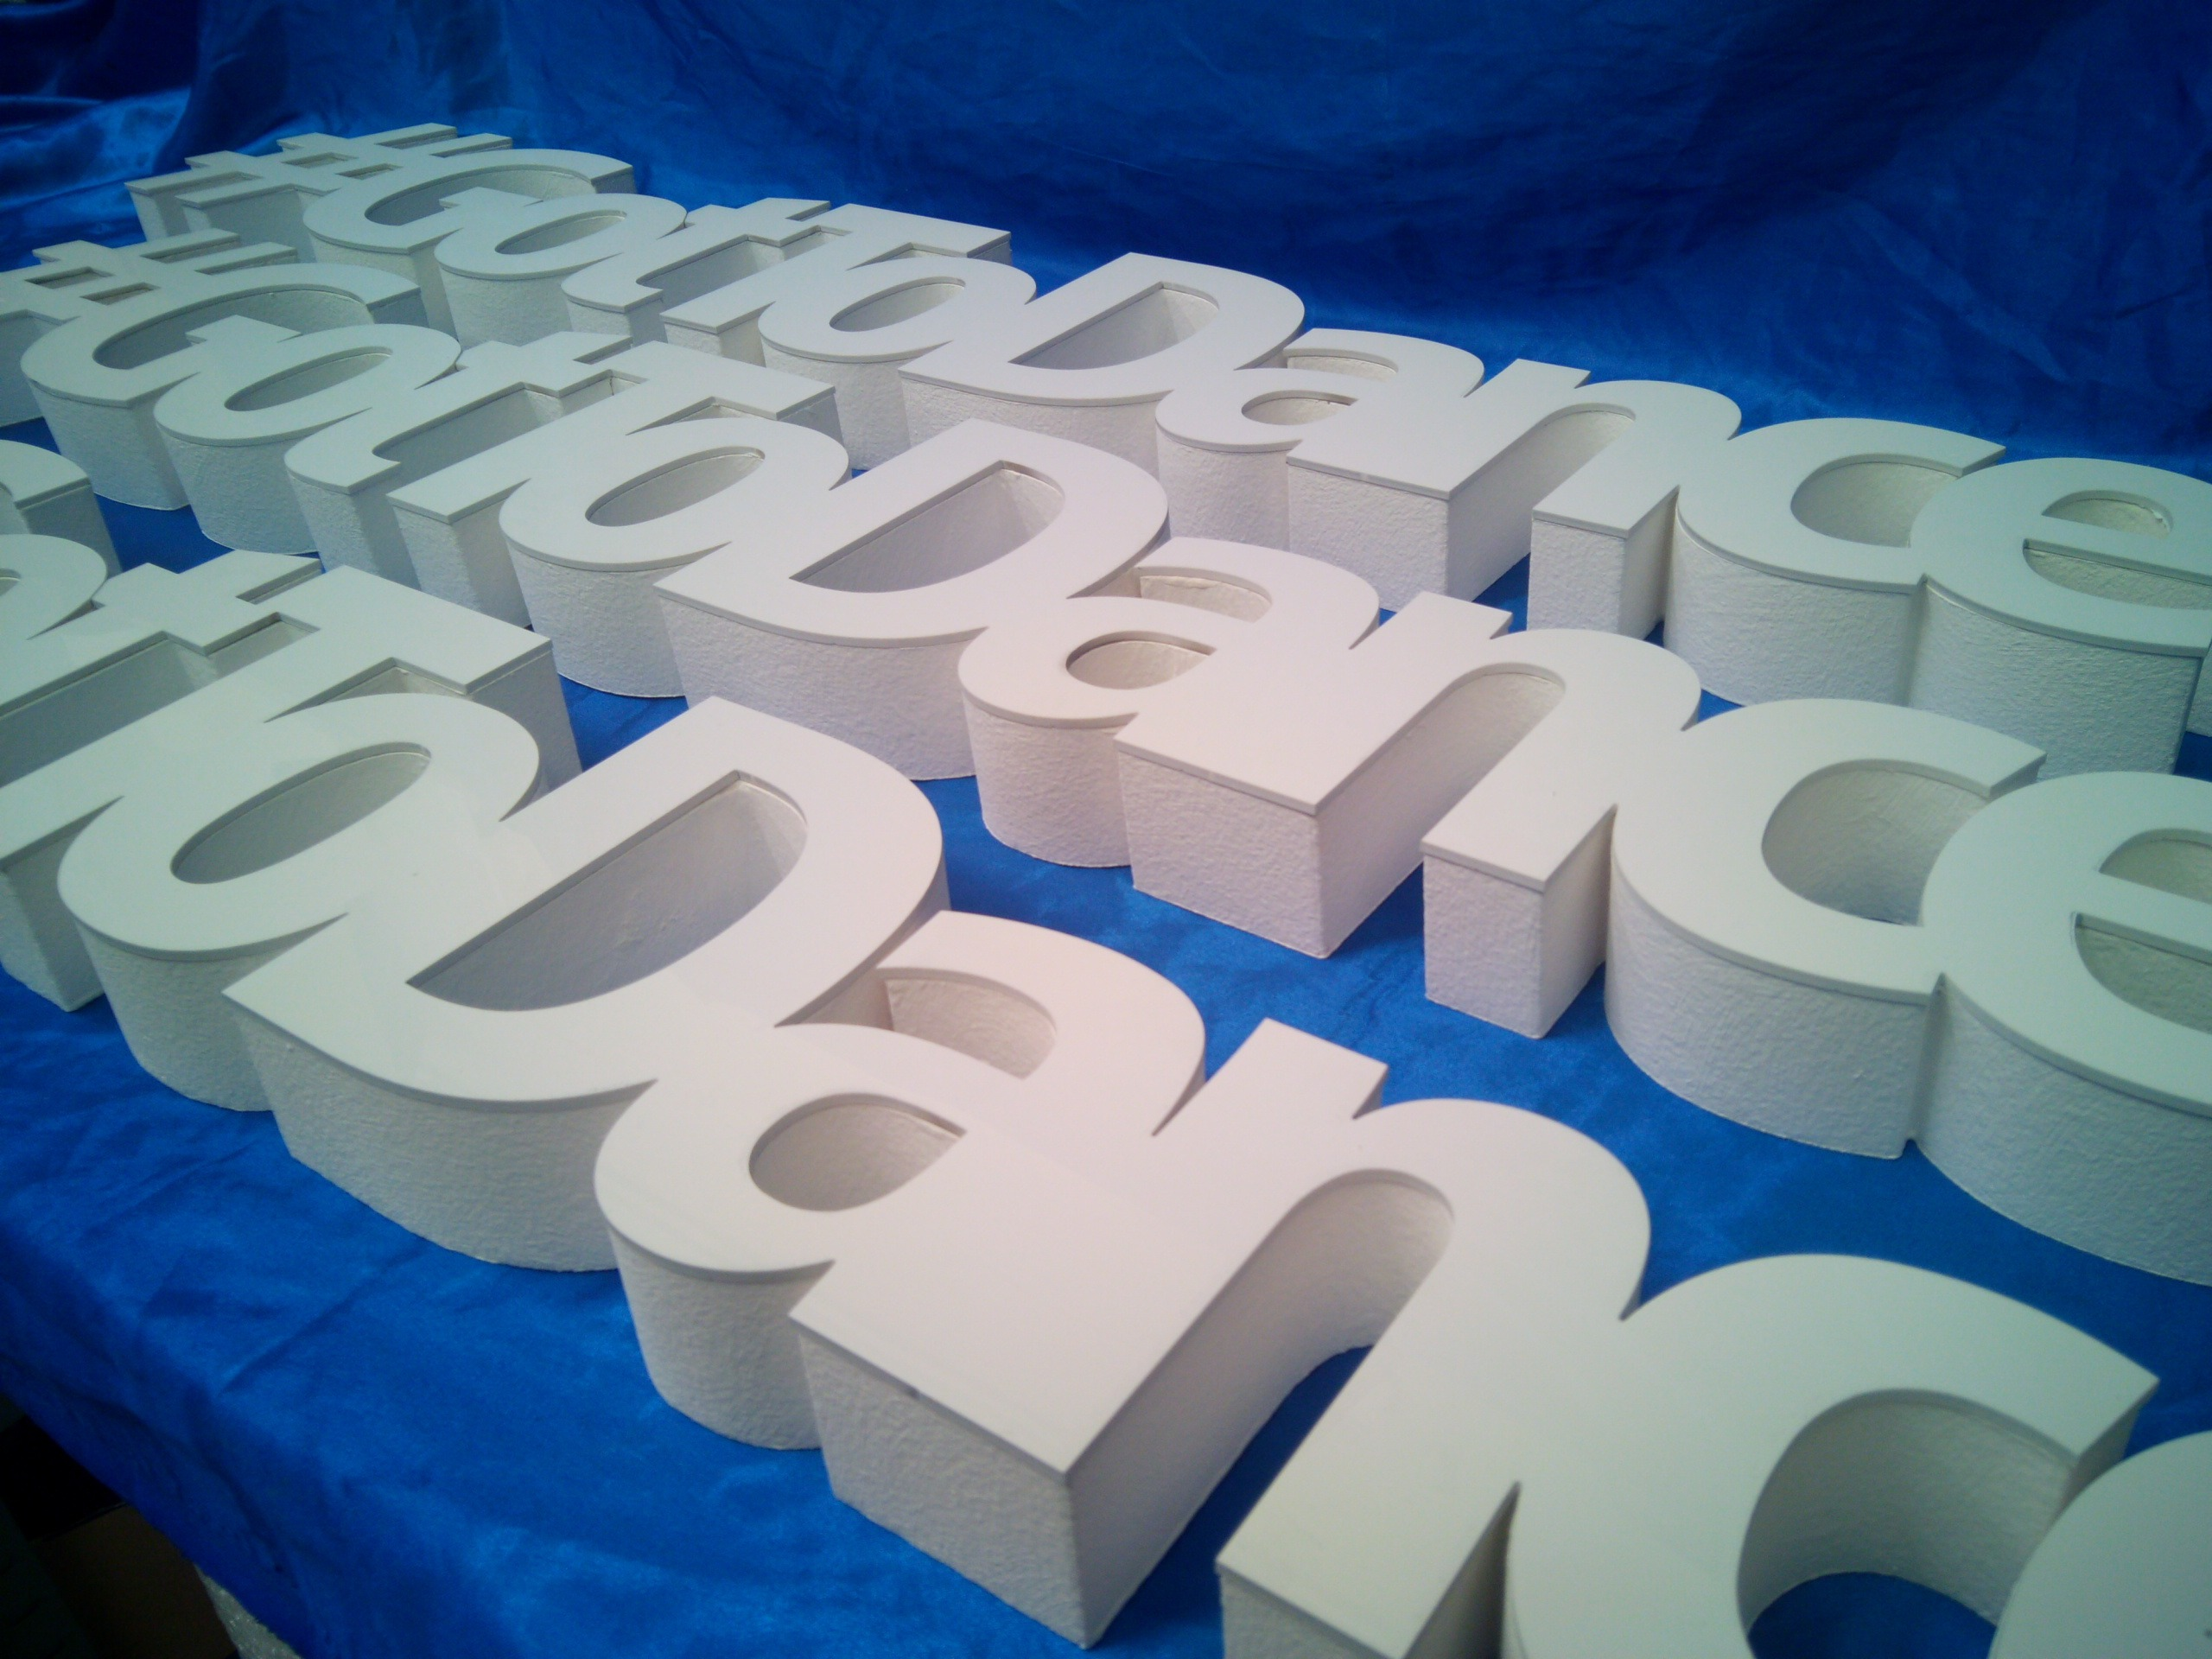 acrylic faced letters